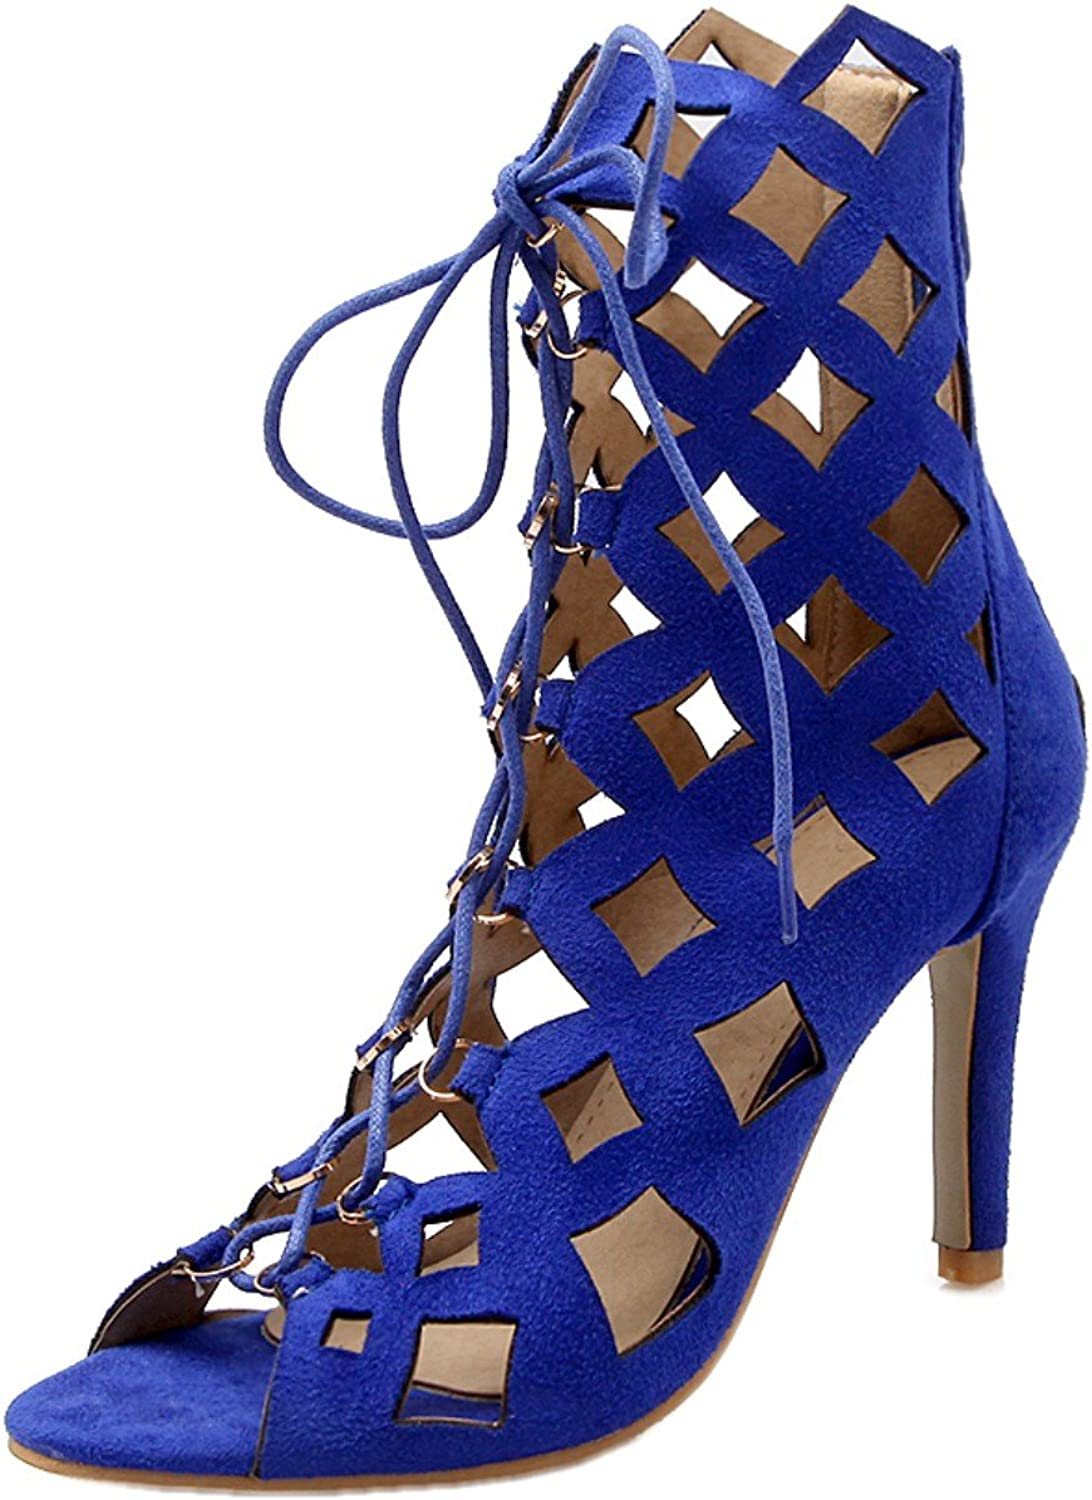 Rongzhi Womens Gladiator High Heels Stiletto Hollow Zip Lace Up Heeled Sandals Party Prom shoes Open Toe